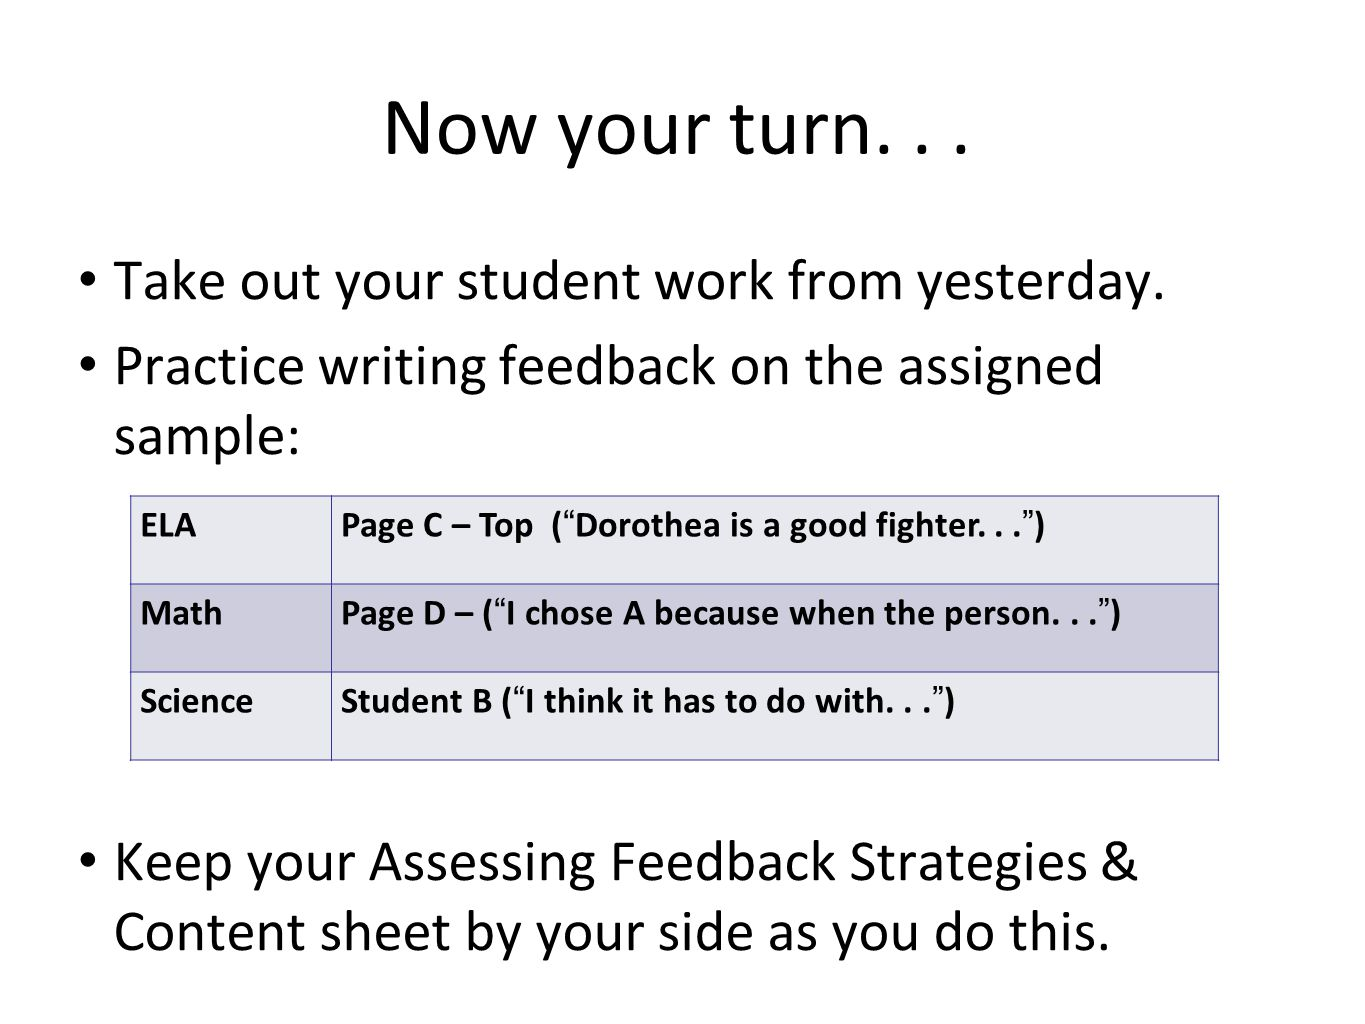 Now your turn. . . Take out your student work from yesterday.